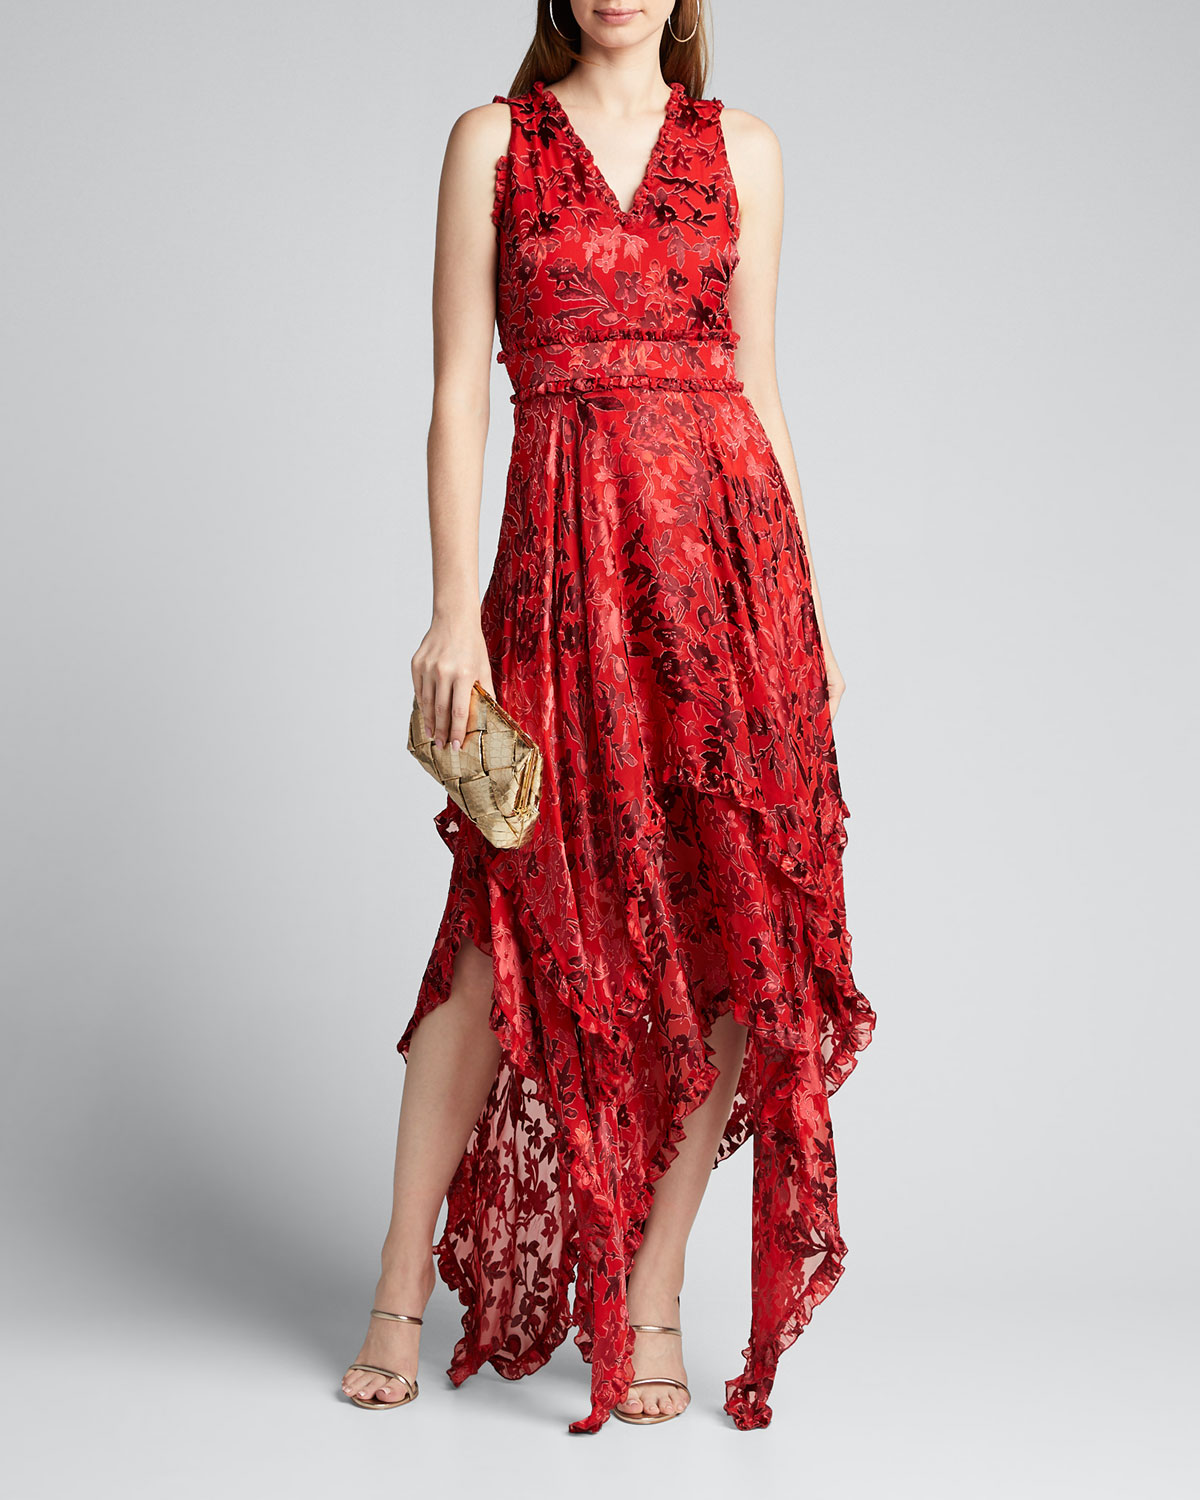 Alice And Olivia Dresses SAMMI DOUBLE-LAYERED HANDKERCHIEF DRESS